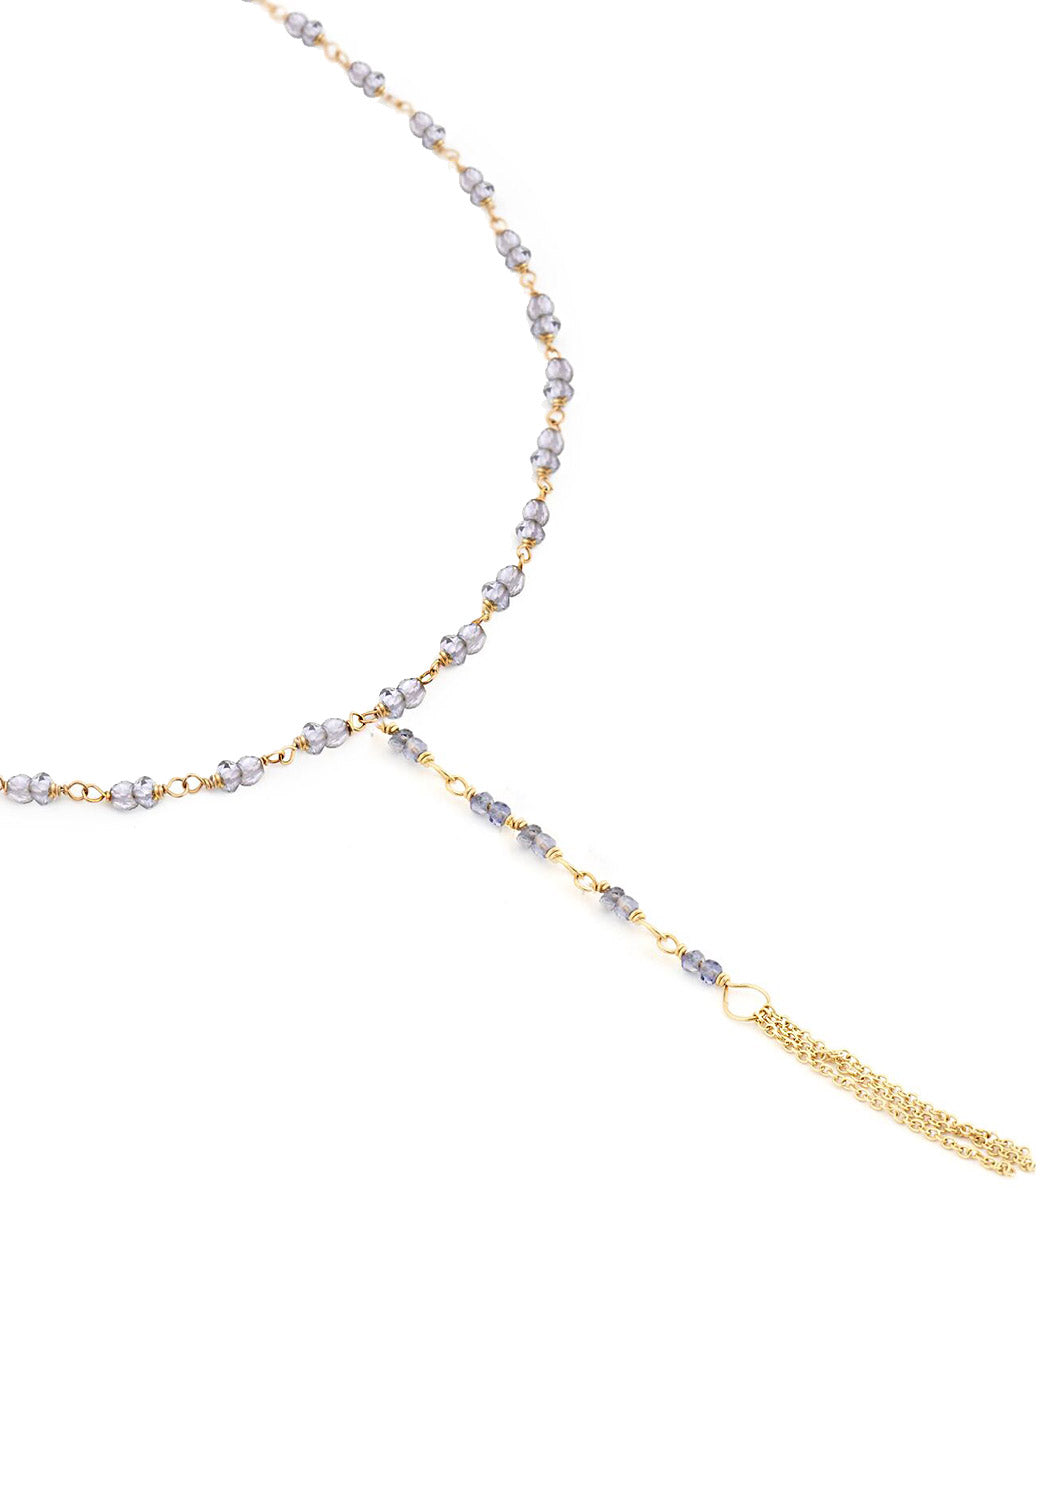 Anne Sportun Iolite Bead Lariat Necklace